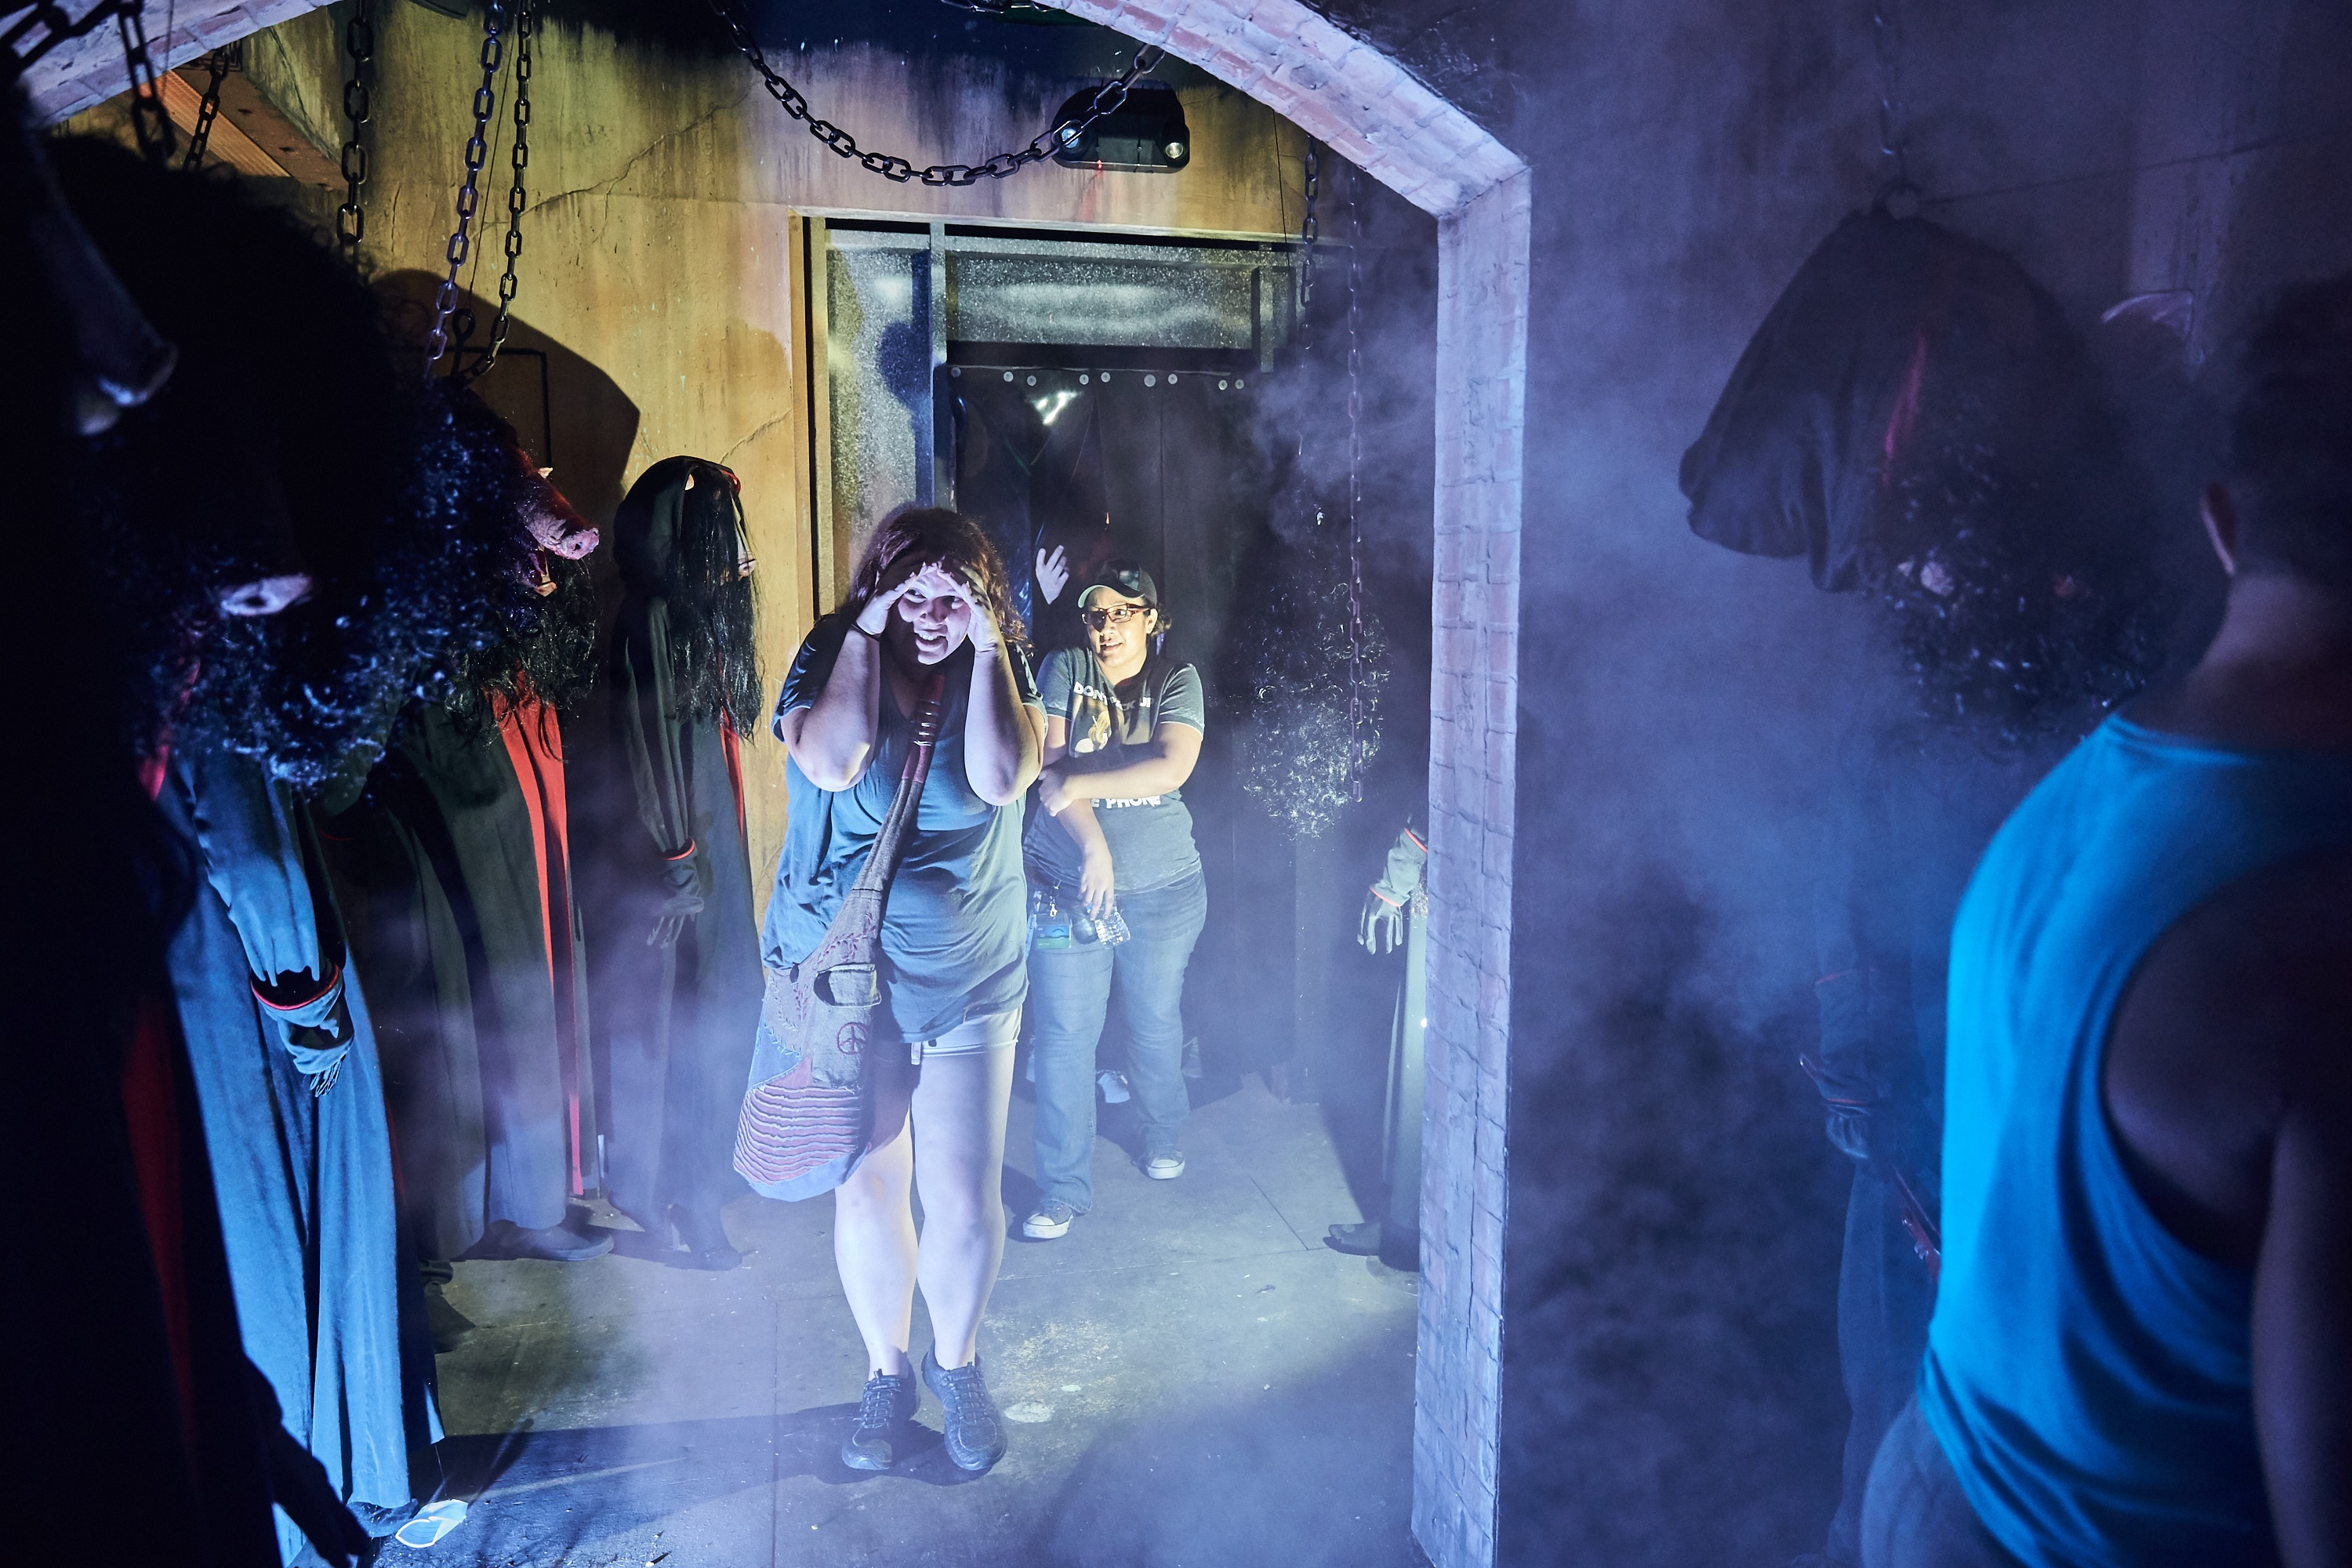 hhn07 SAW - Universal Orlando Thrills and Terrifies With Halloween Horror Nights 27